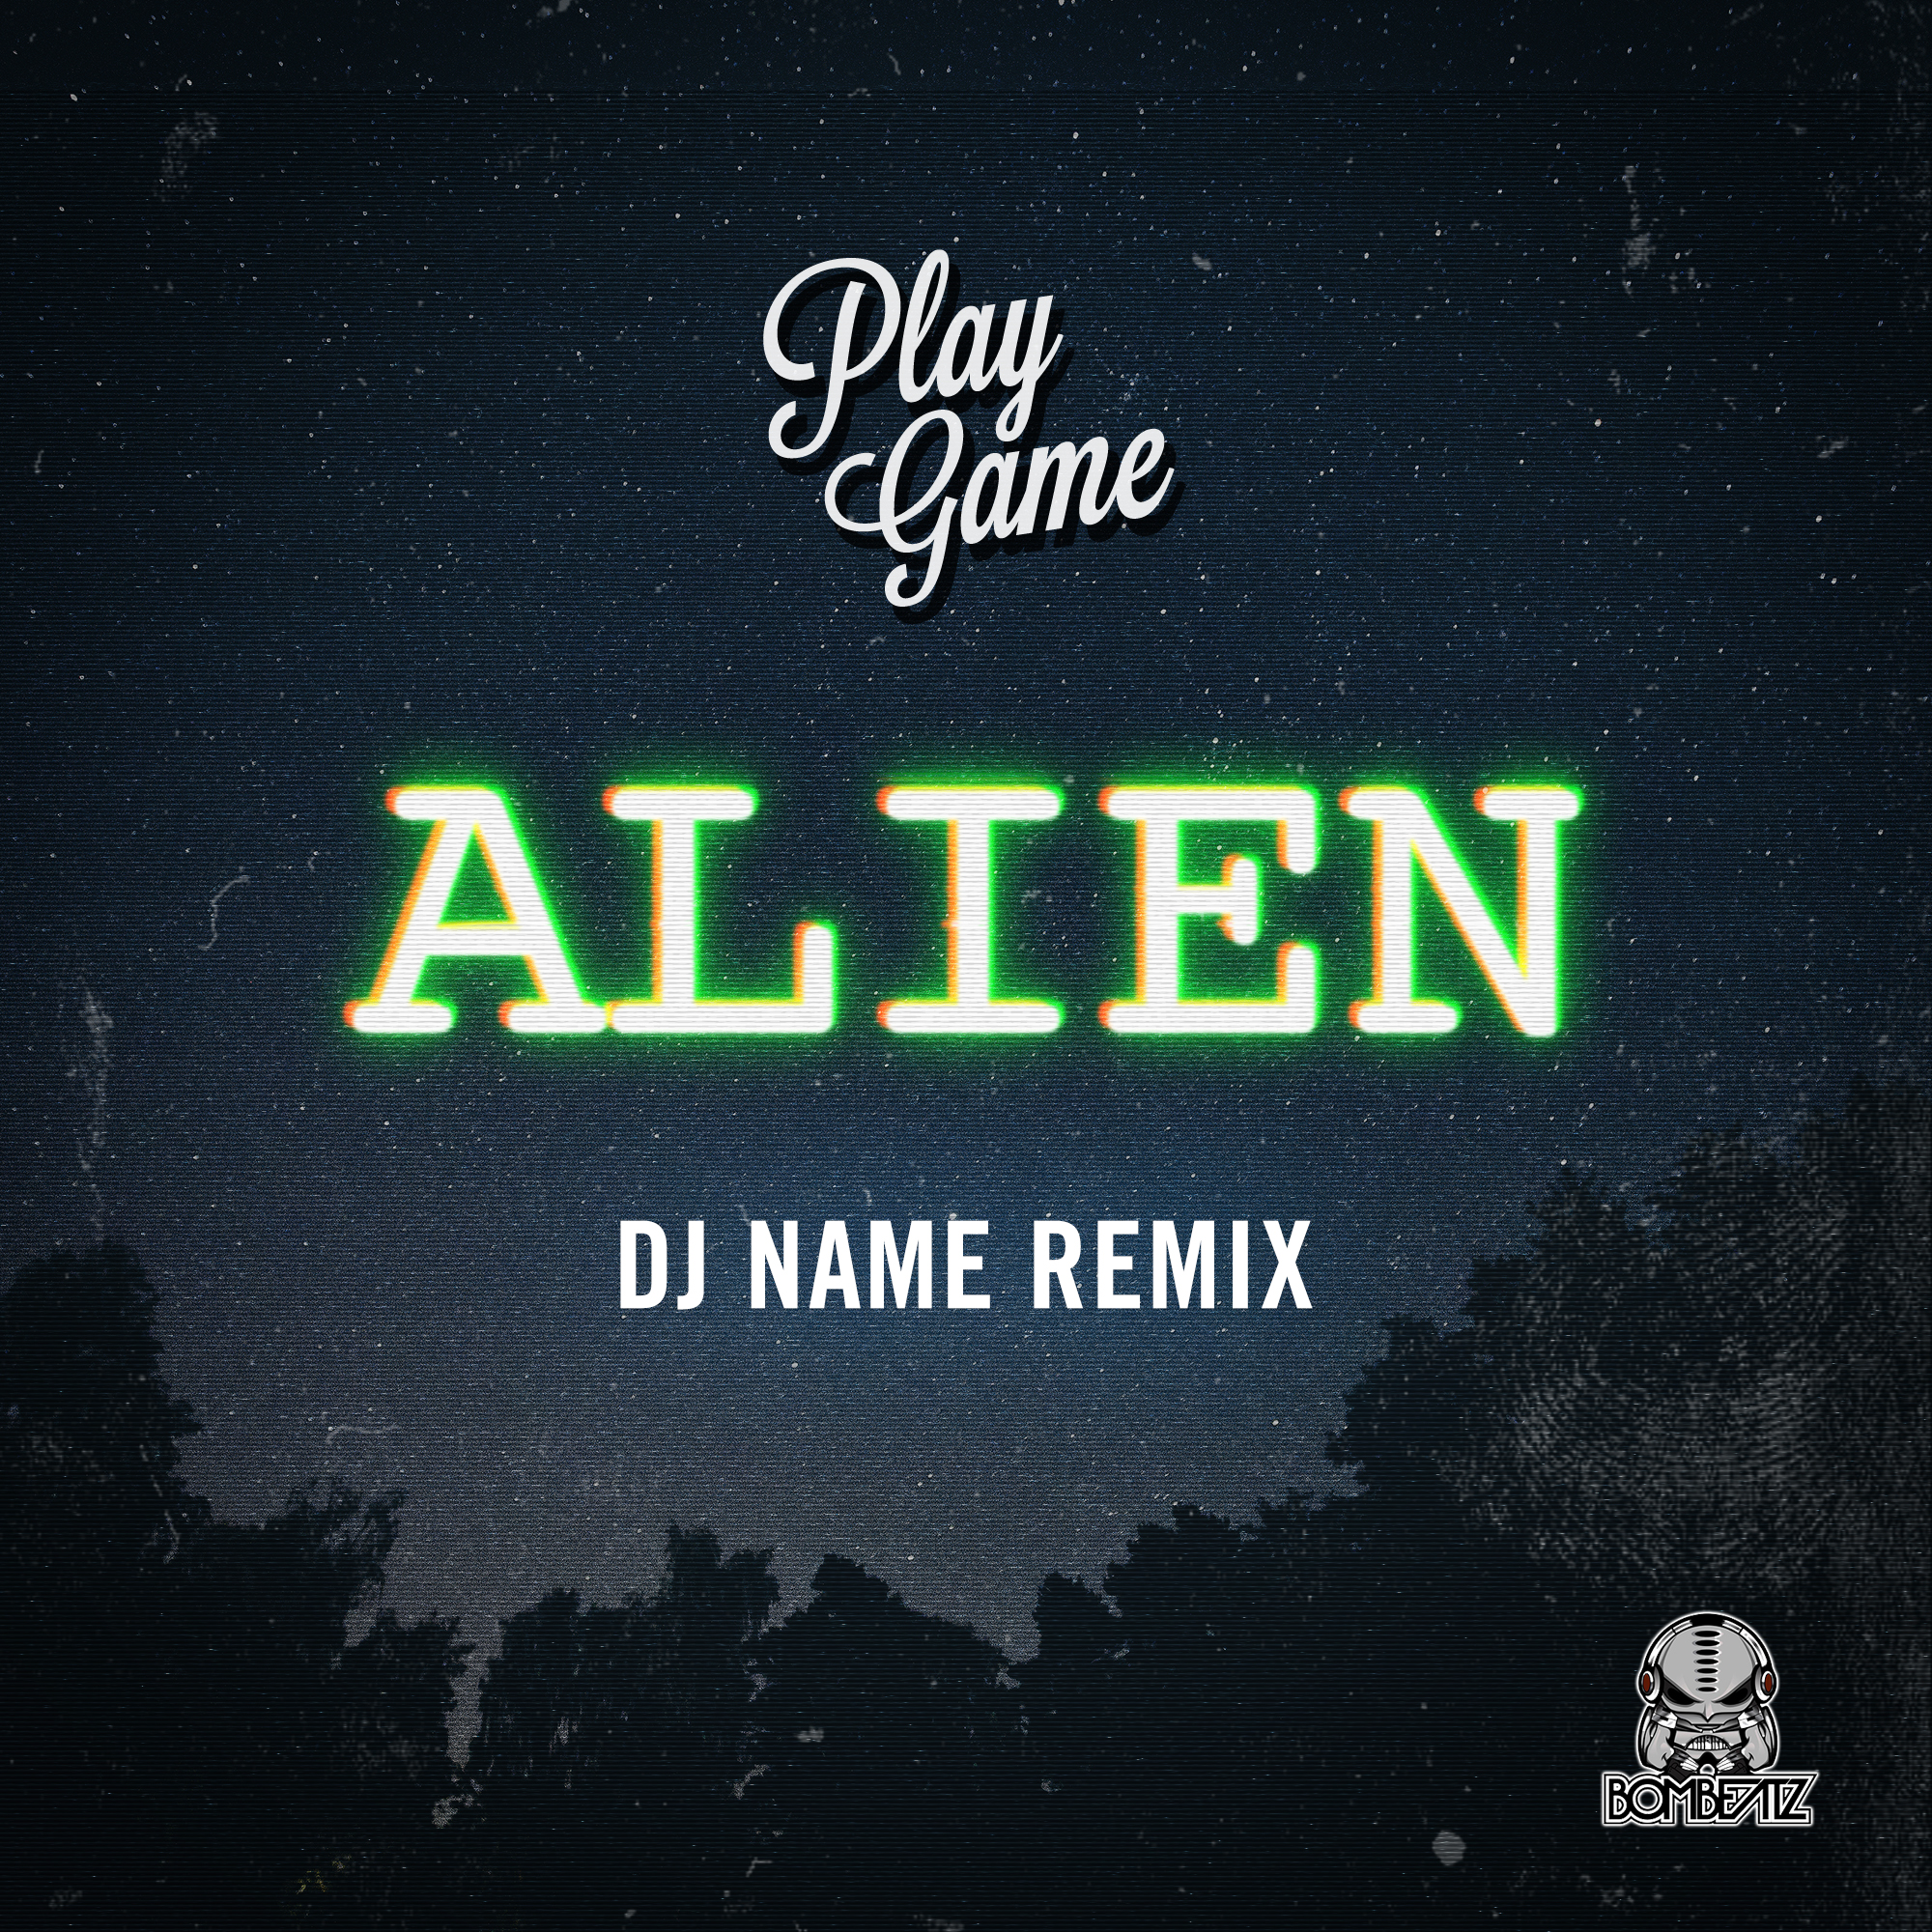 PlayGame - Alien.jpg